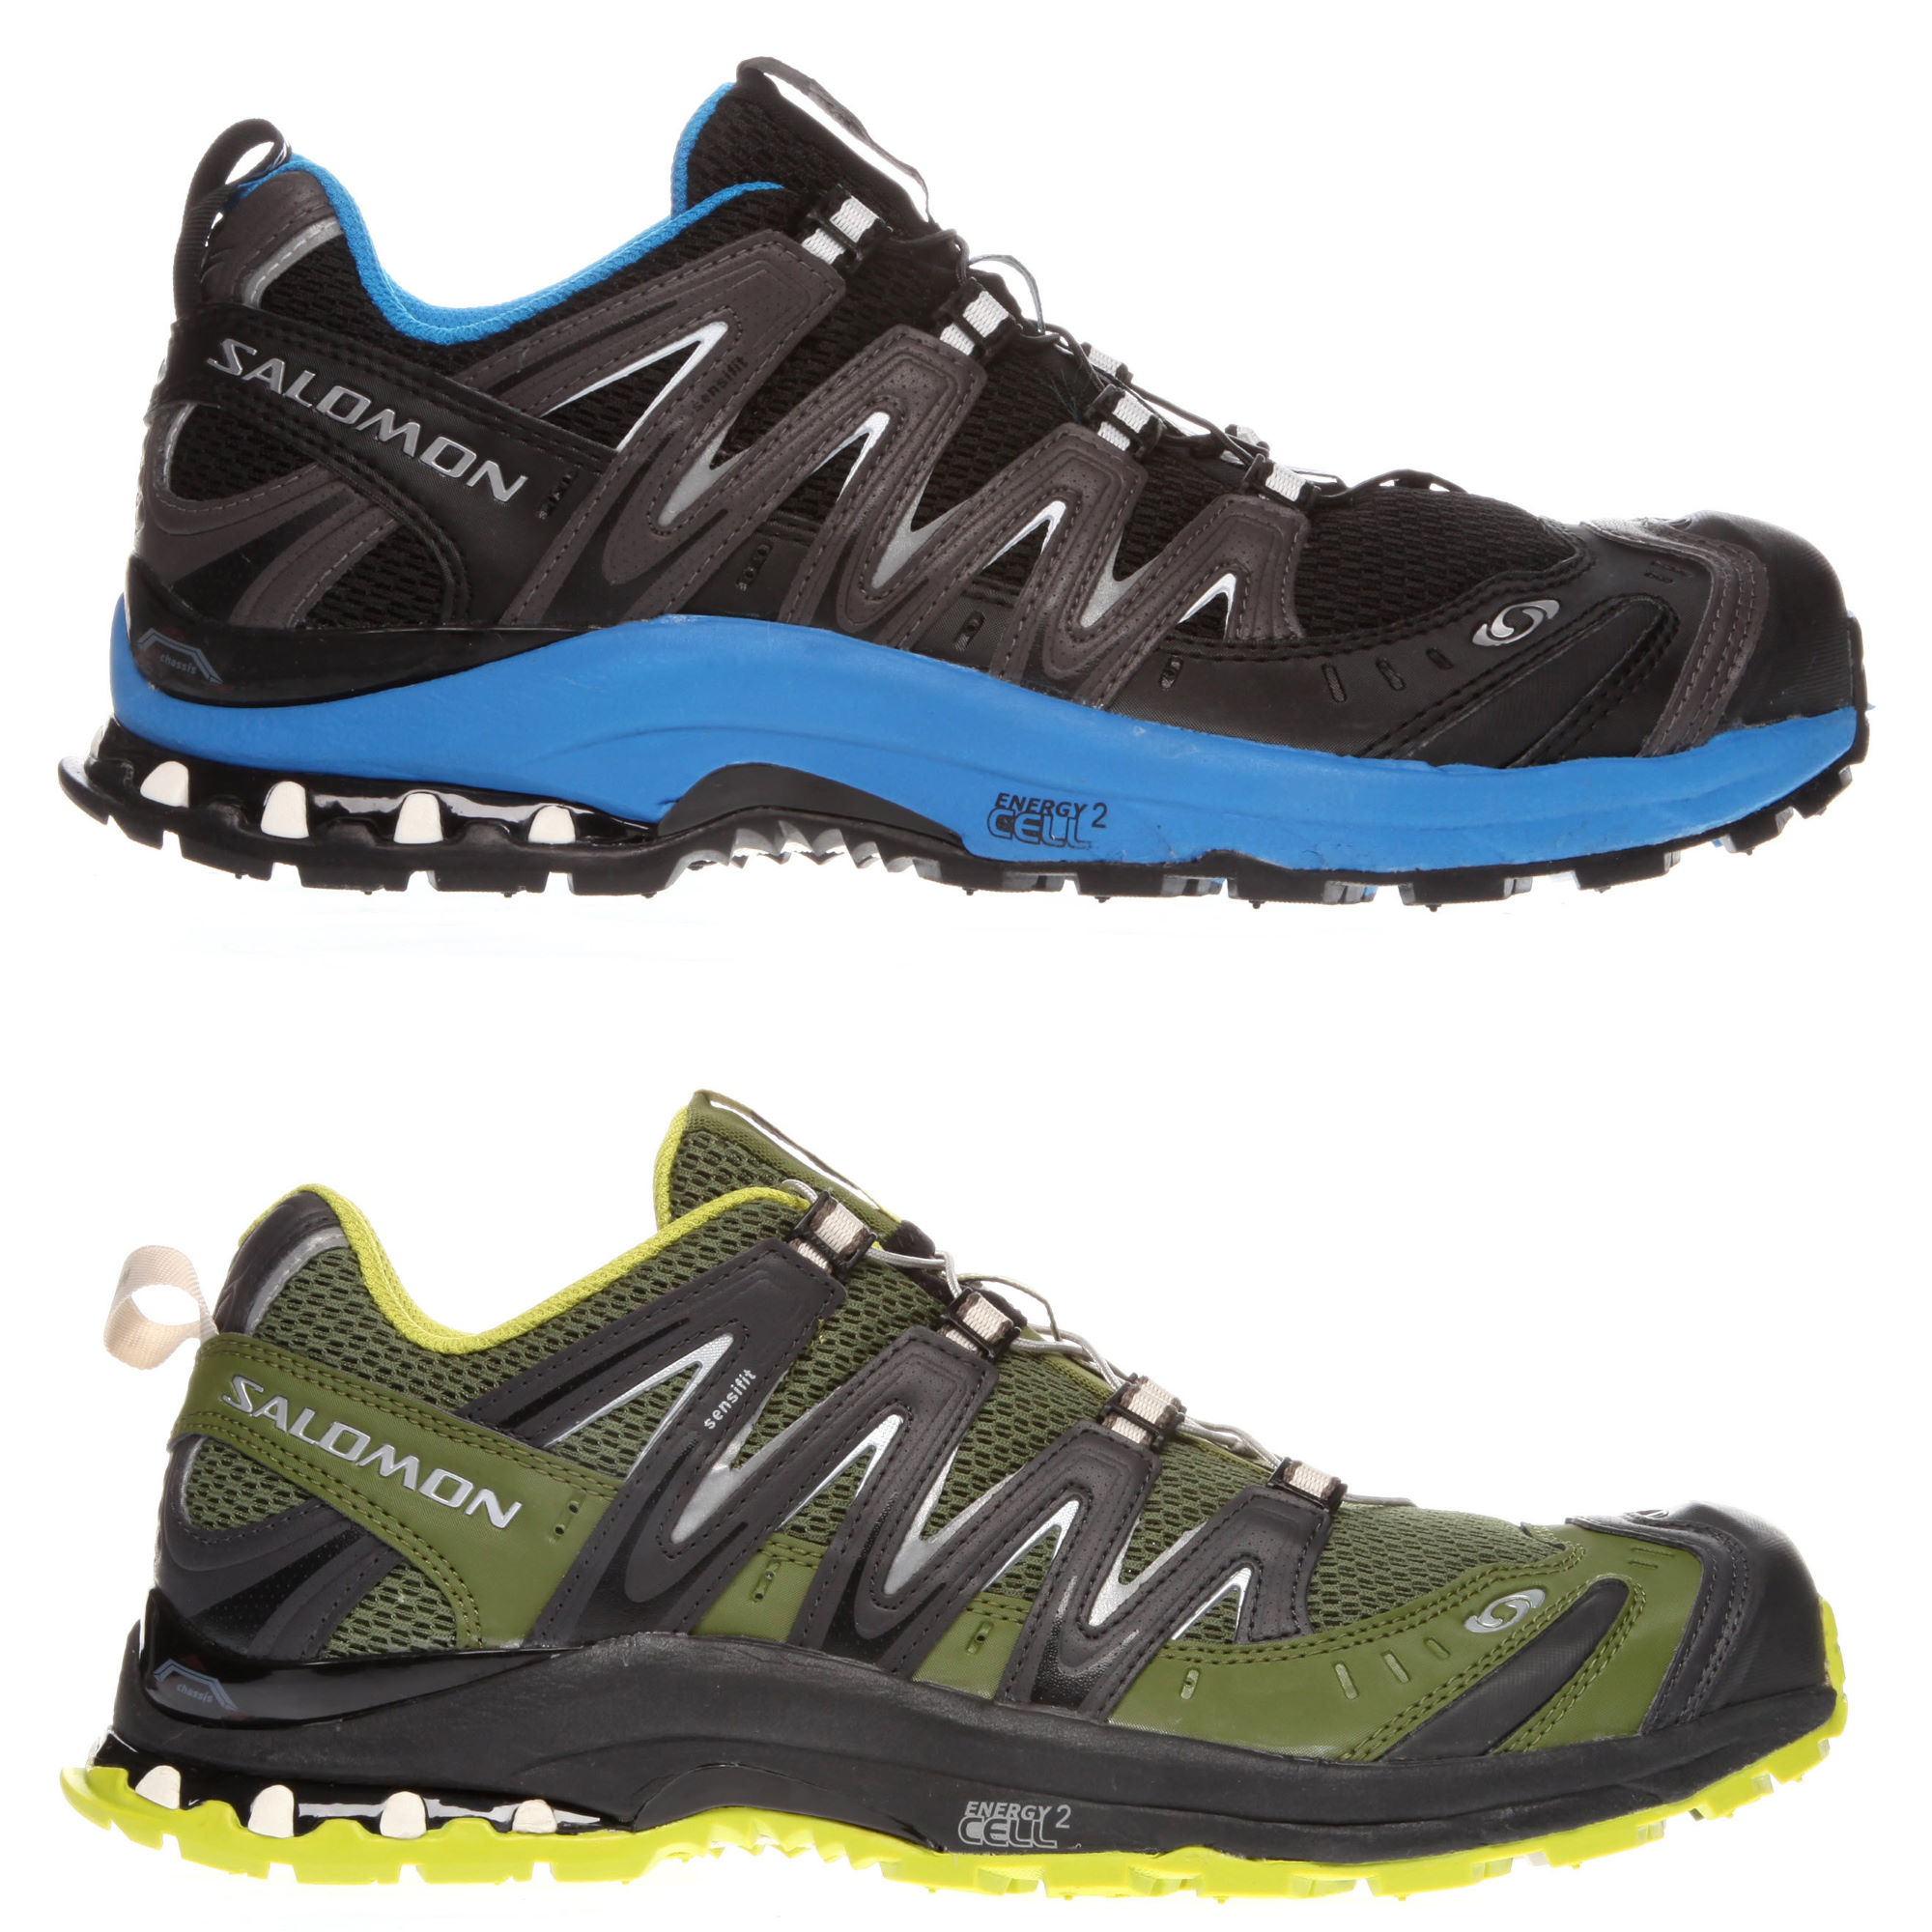 wiggle salomon xa pro 3d ultra 2 shoes aw12 offroad running shoes. Black Bedroom Furniture Sets. Home Design Ideas